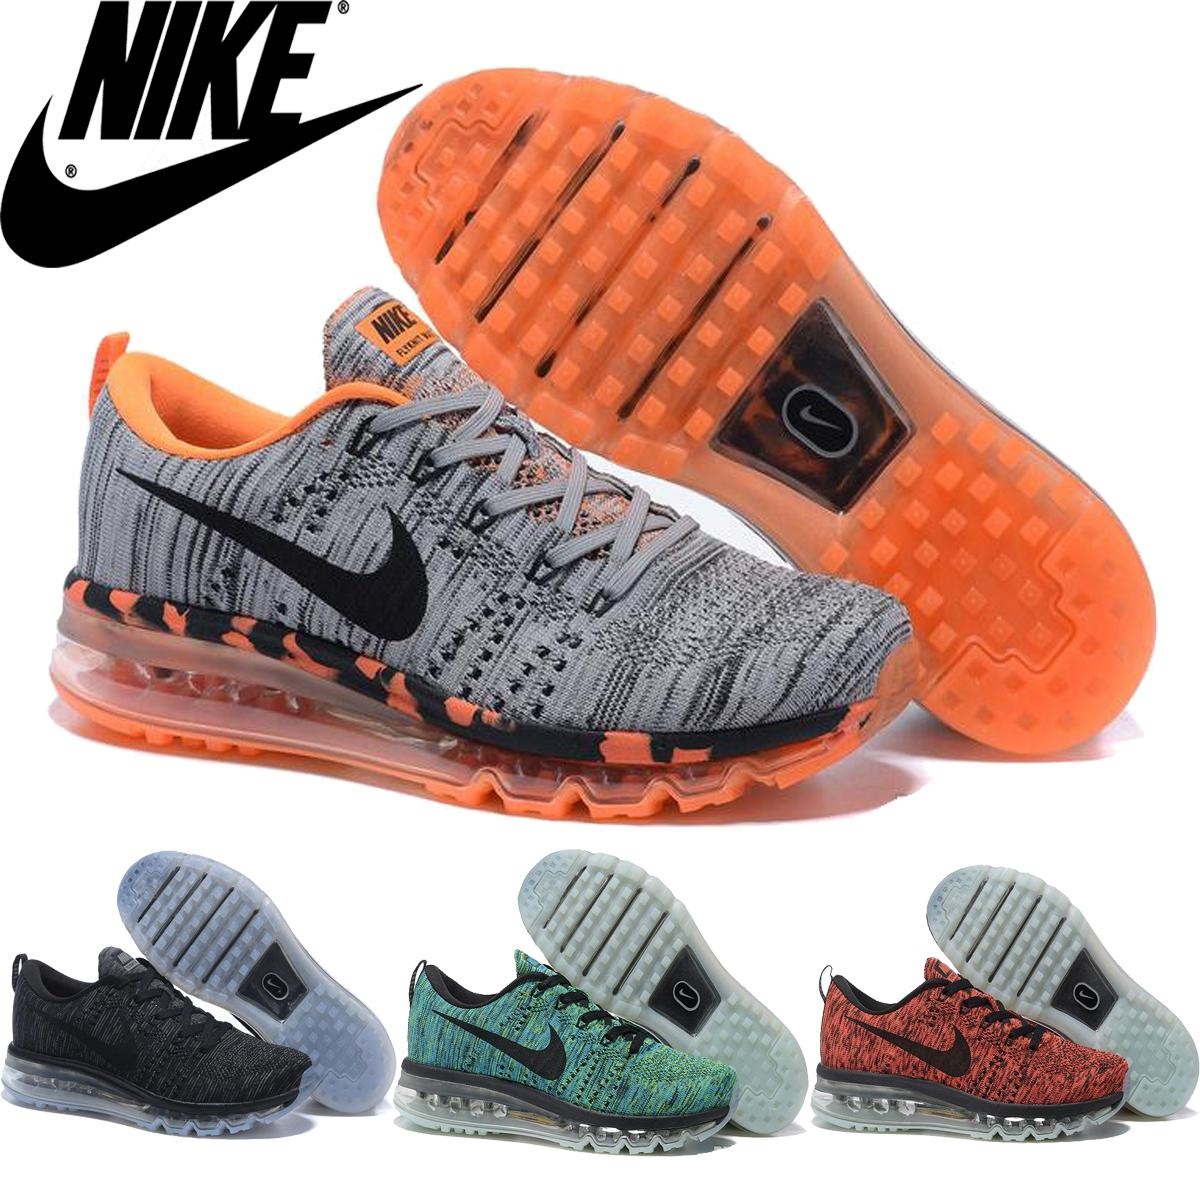 Nike Flyknit Air Max 2016 Premium Men'S Women'S Running Shoes,Original  Quality Nike Airmax Flyknit Maxes For Men Women Sports Sneakers Shoes Shop  Free Shoes ...